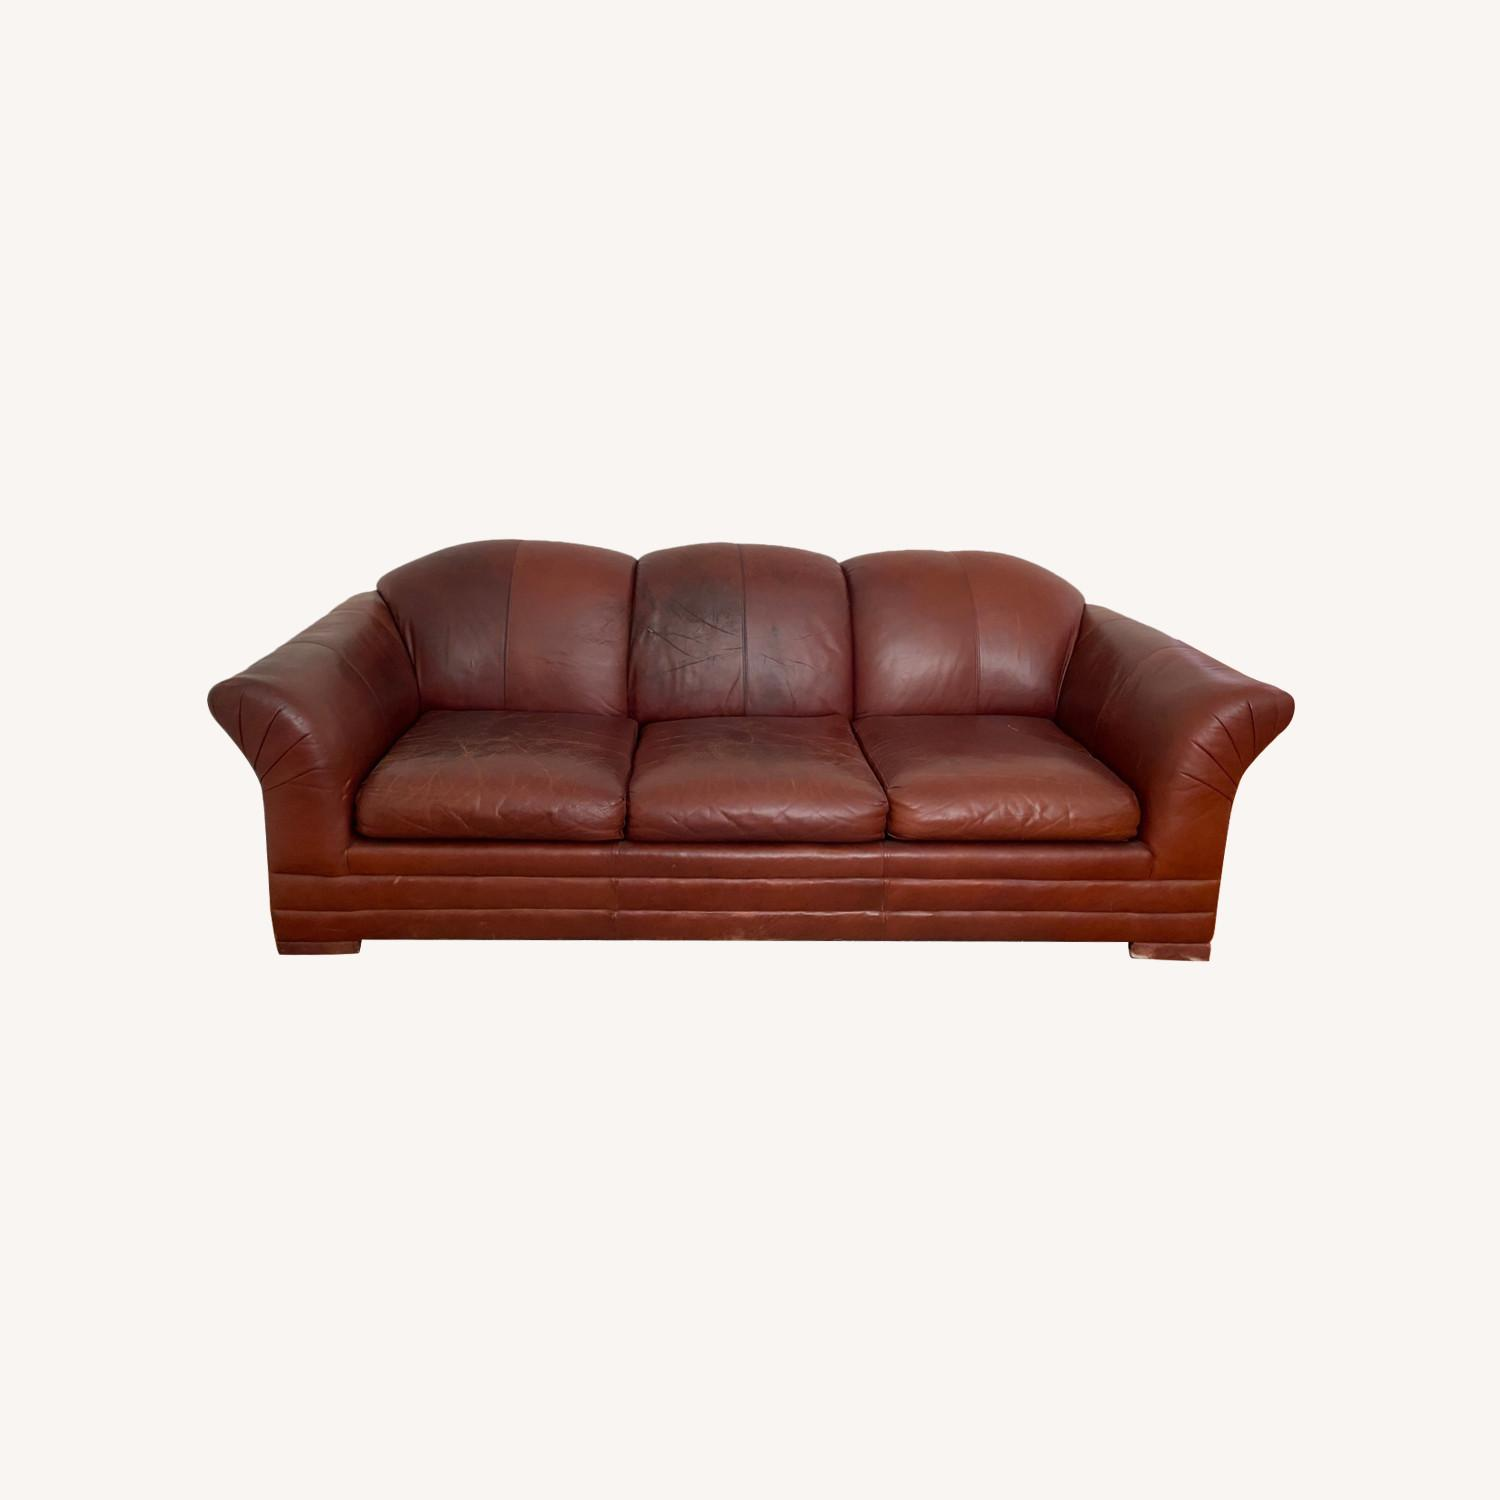 Leather 3 Seat Sleeper Sofa - image-0